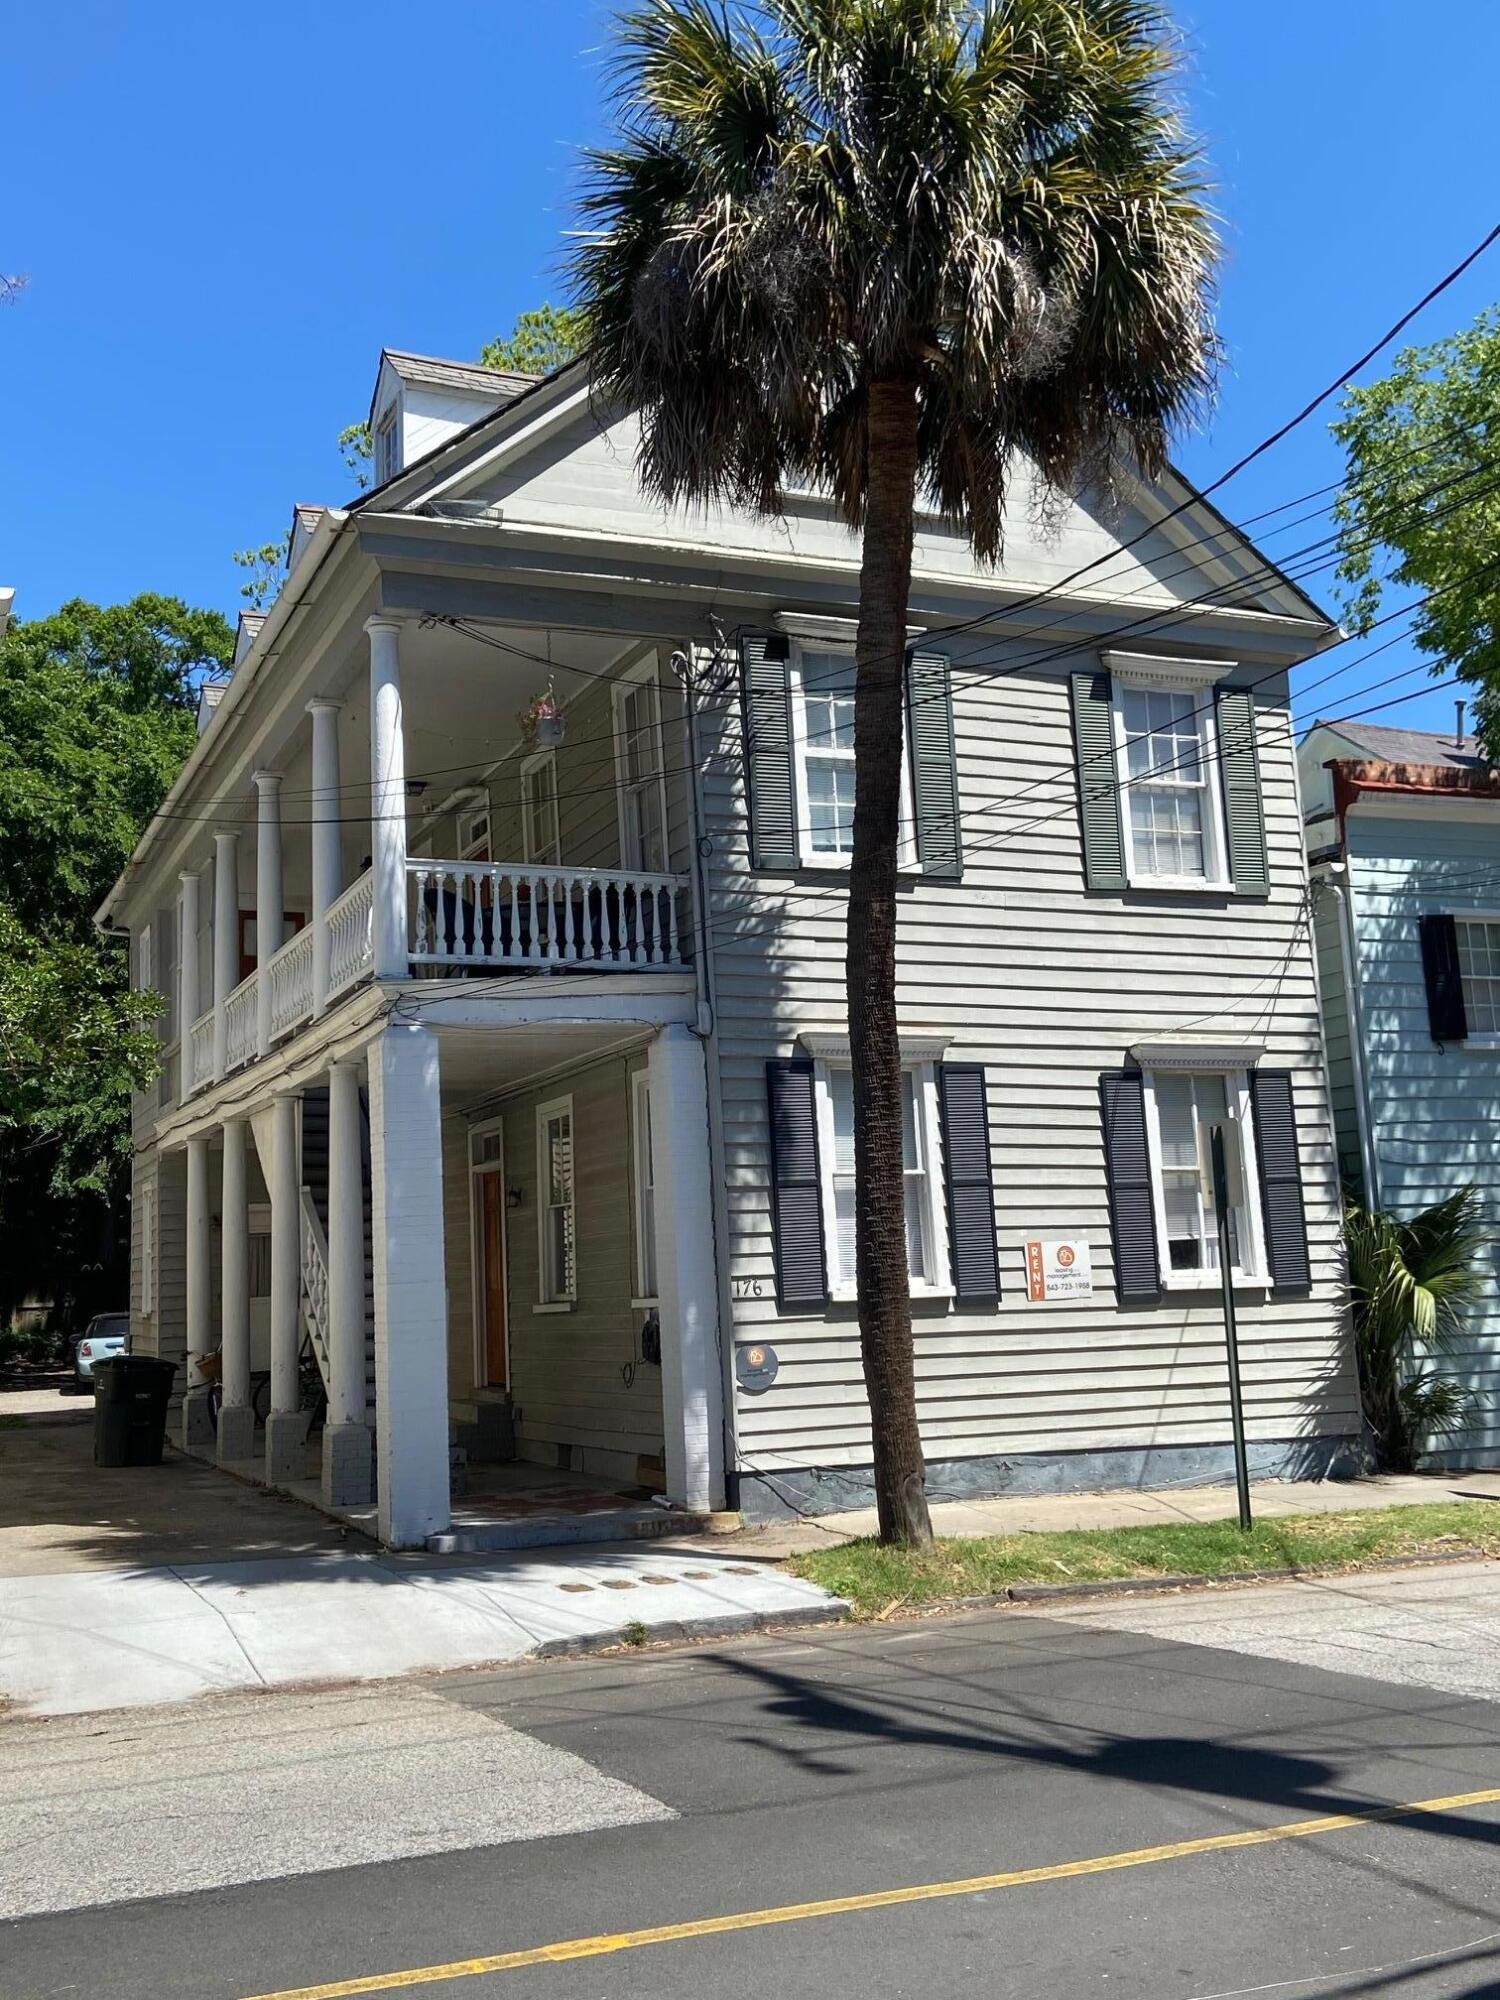 176 Wentworth Street, Charleston, 29401, ,MultiFamily,For Sale,Wentworth,21011623